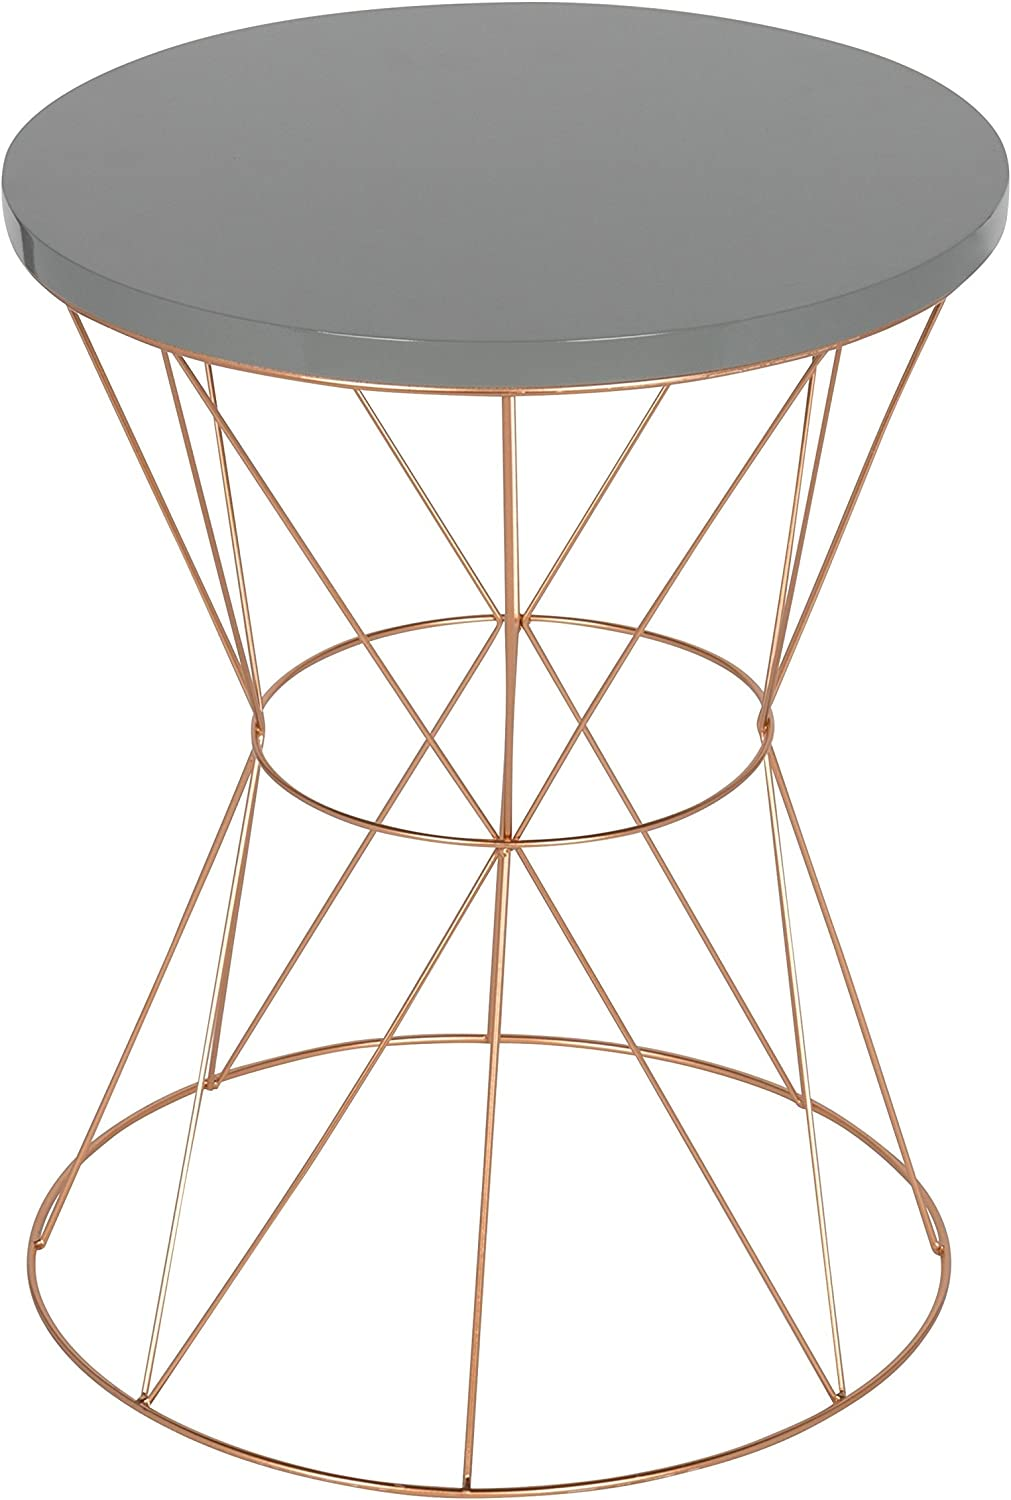 Kate and Laurel Mendel Round Metal End Table, Gray Top with Rose Gold Base